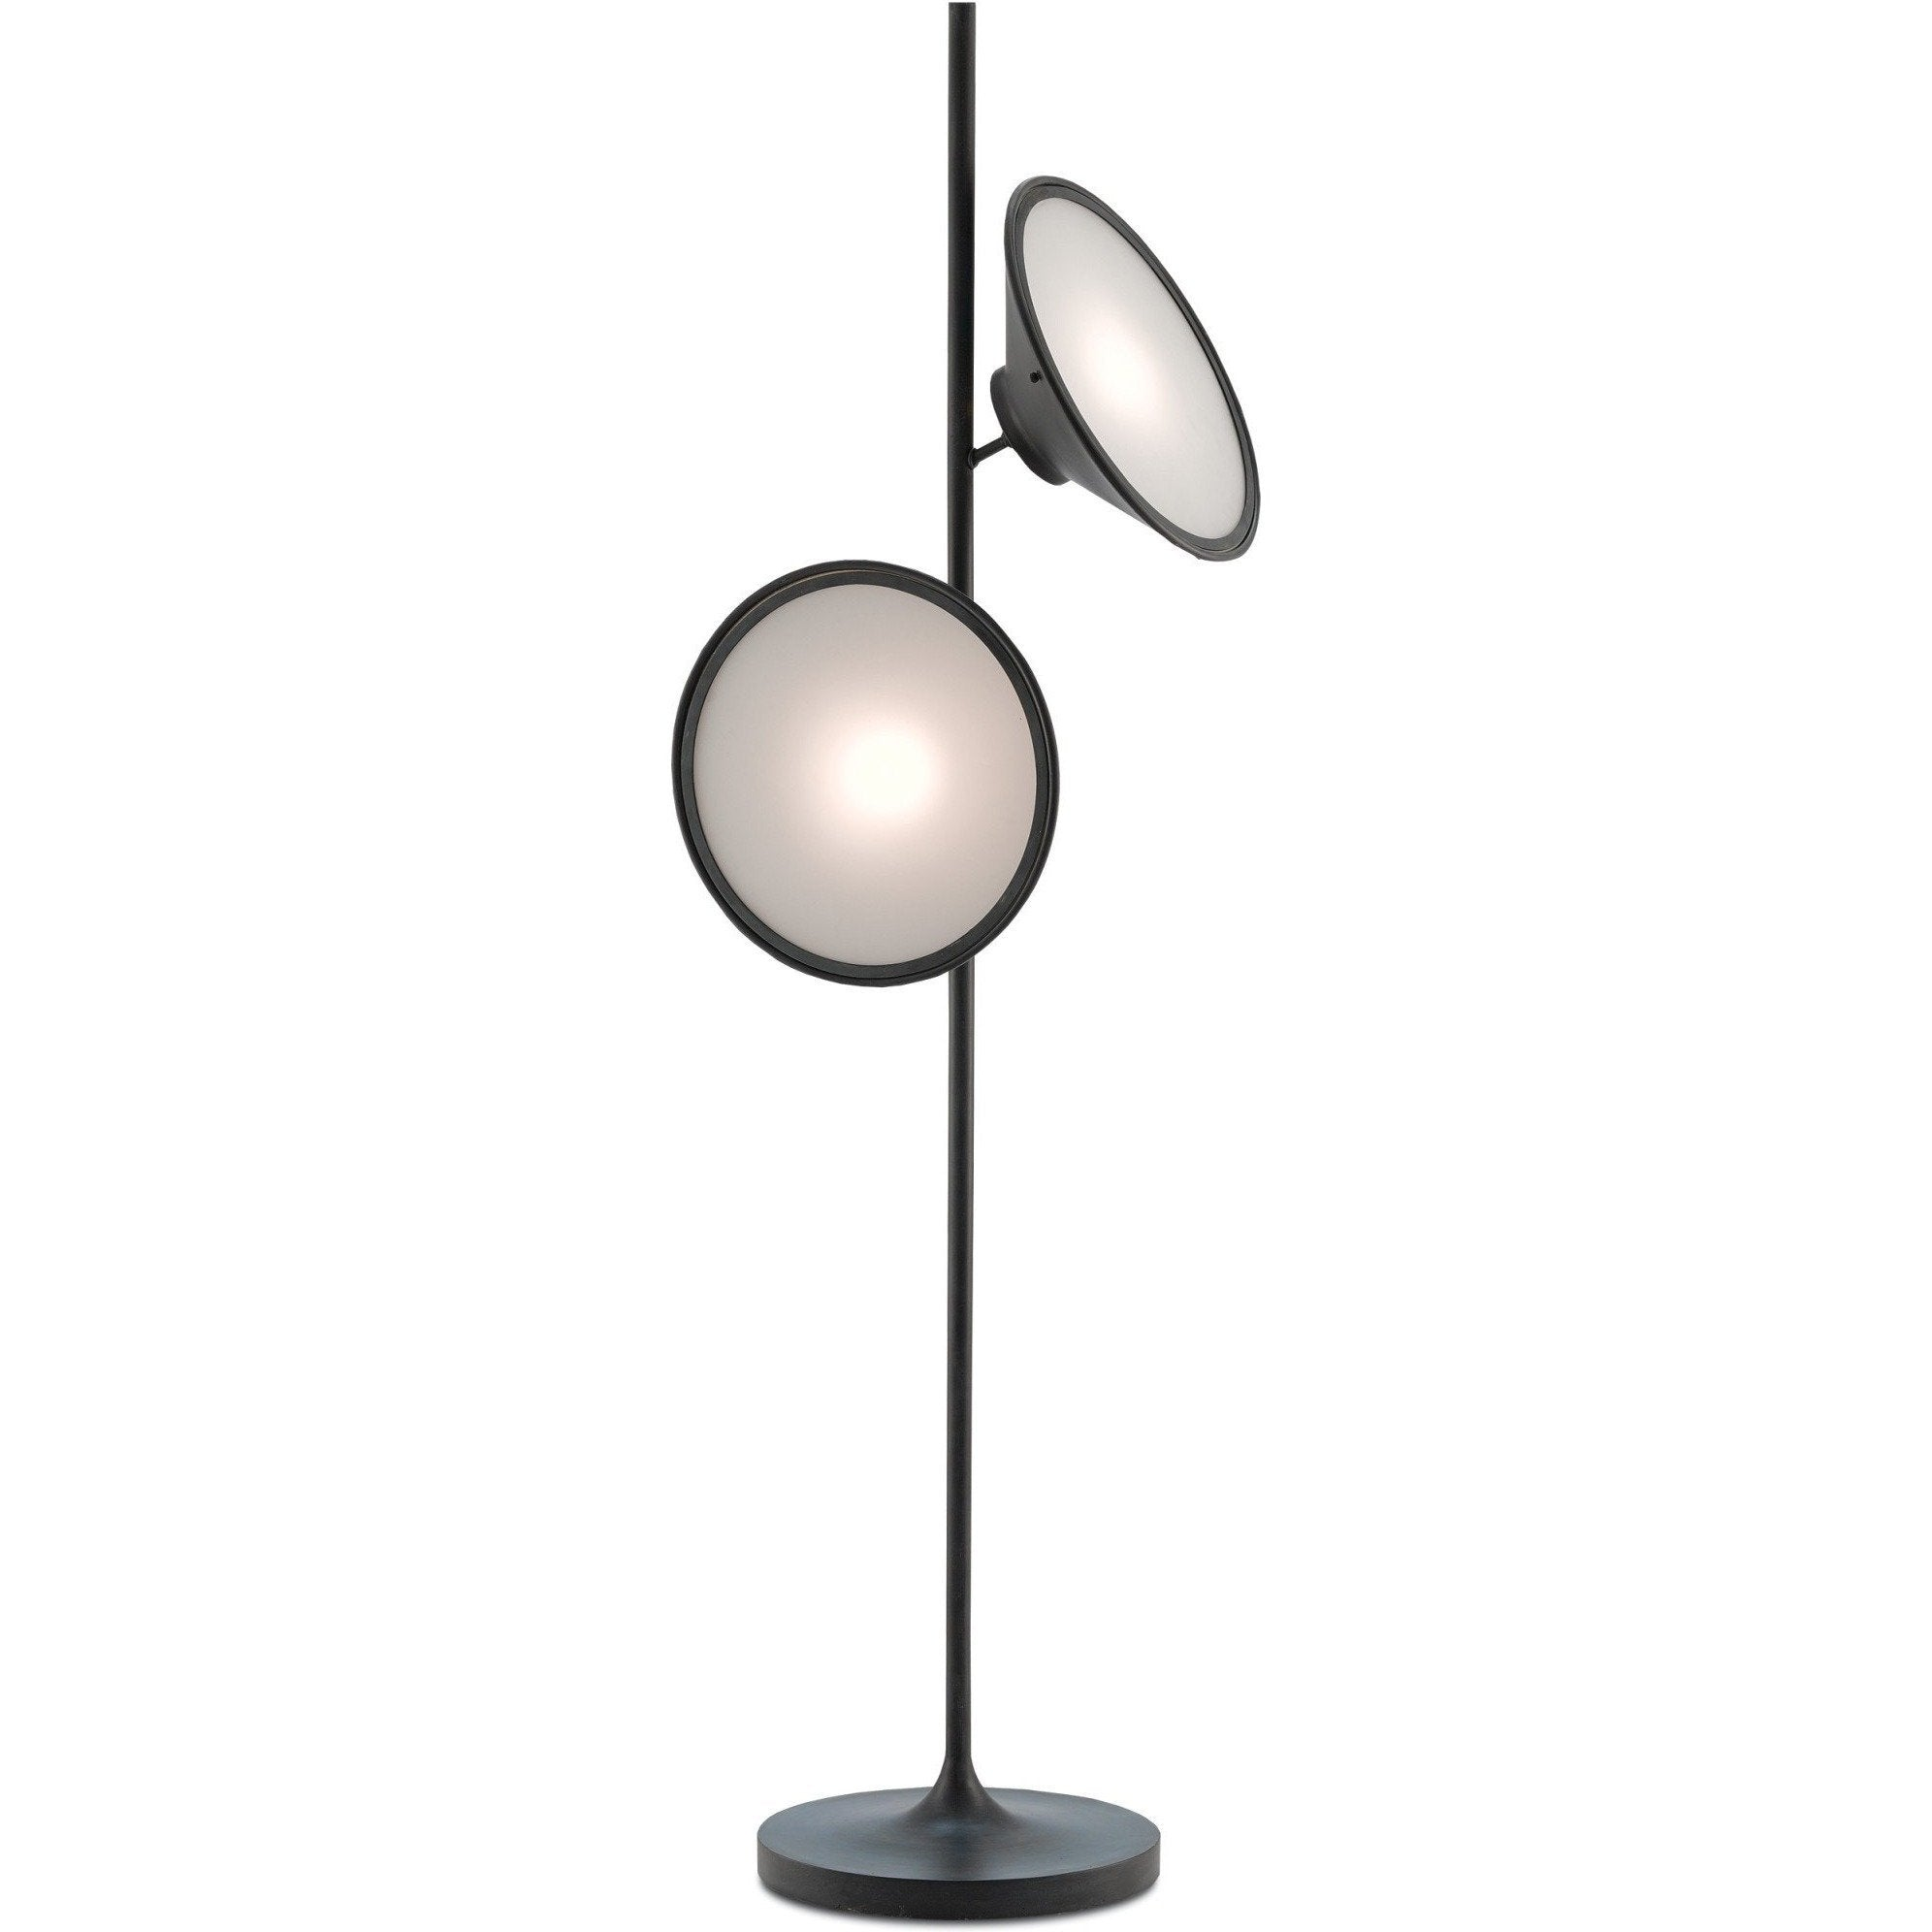 Currey and Company Bulat Floor Lamp 8000-0018 - LOVECUP